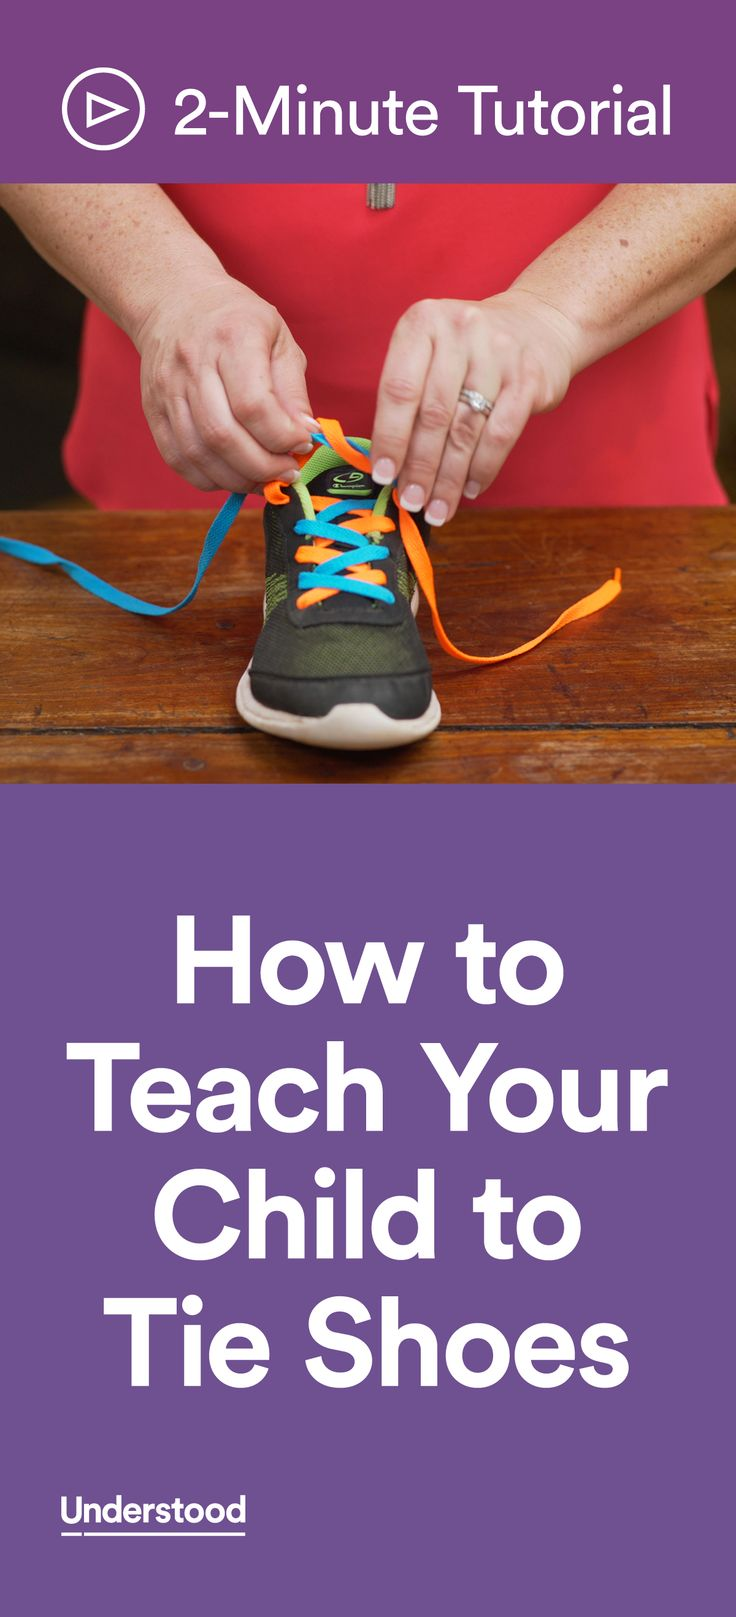 Is your child struggling with tying shoes? Some kids have trouble because of motor skills or coordination challenges. Others can't remember the order of the steps or struggle with following directions. No matter why your child is having difficulty, this unique shoe-tying method can help your child learn to tie shoes on his own.